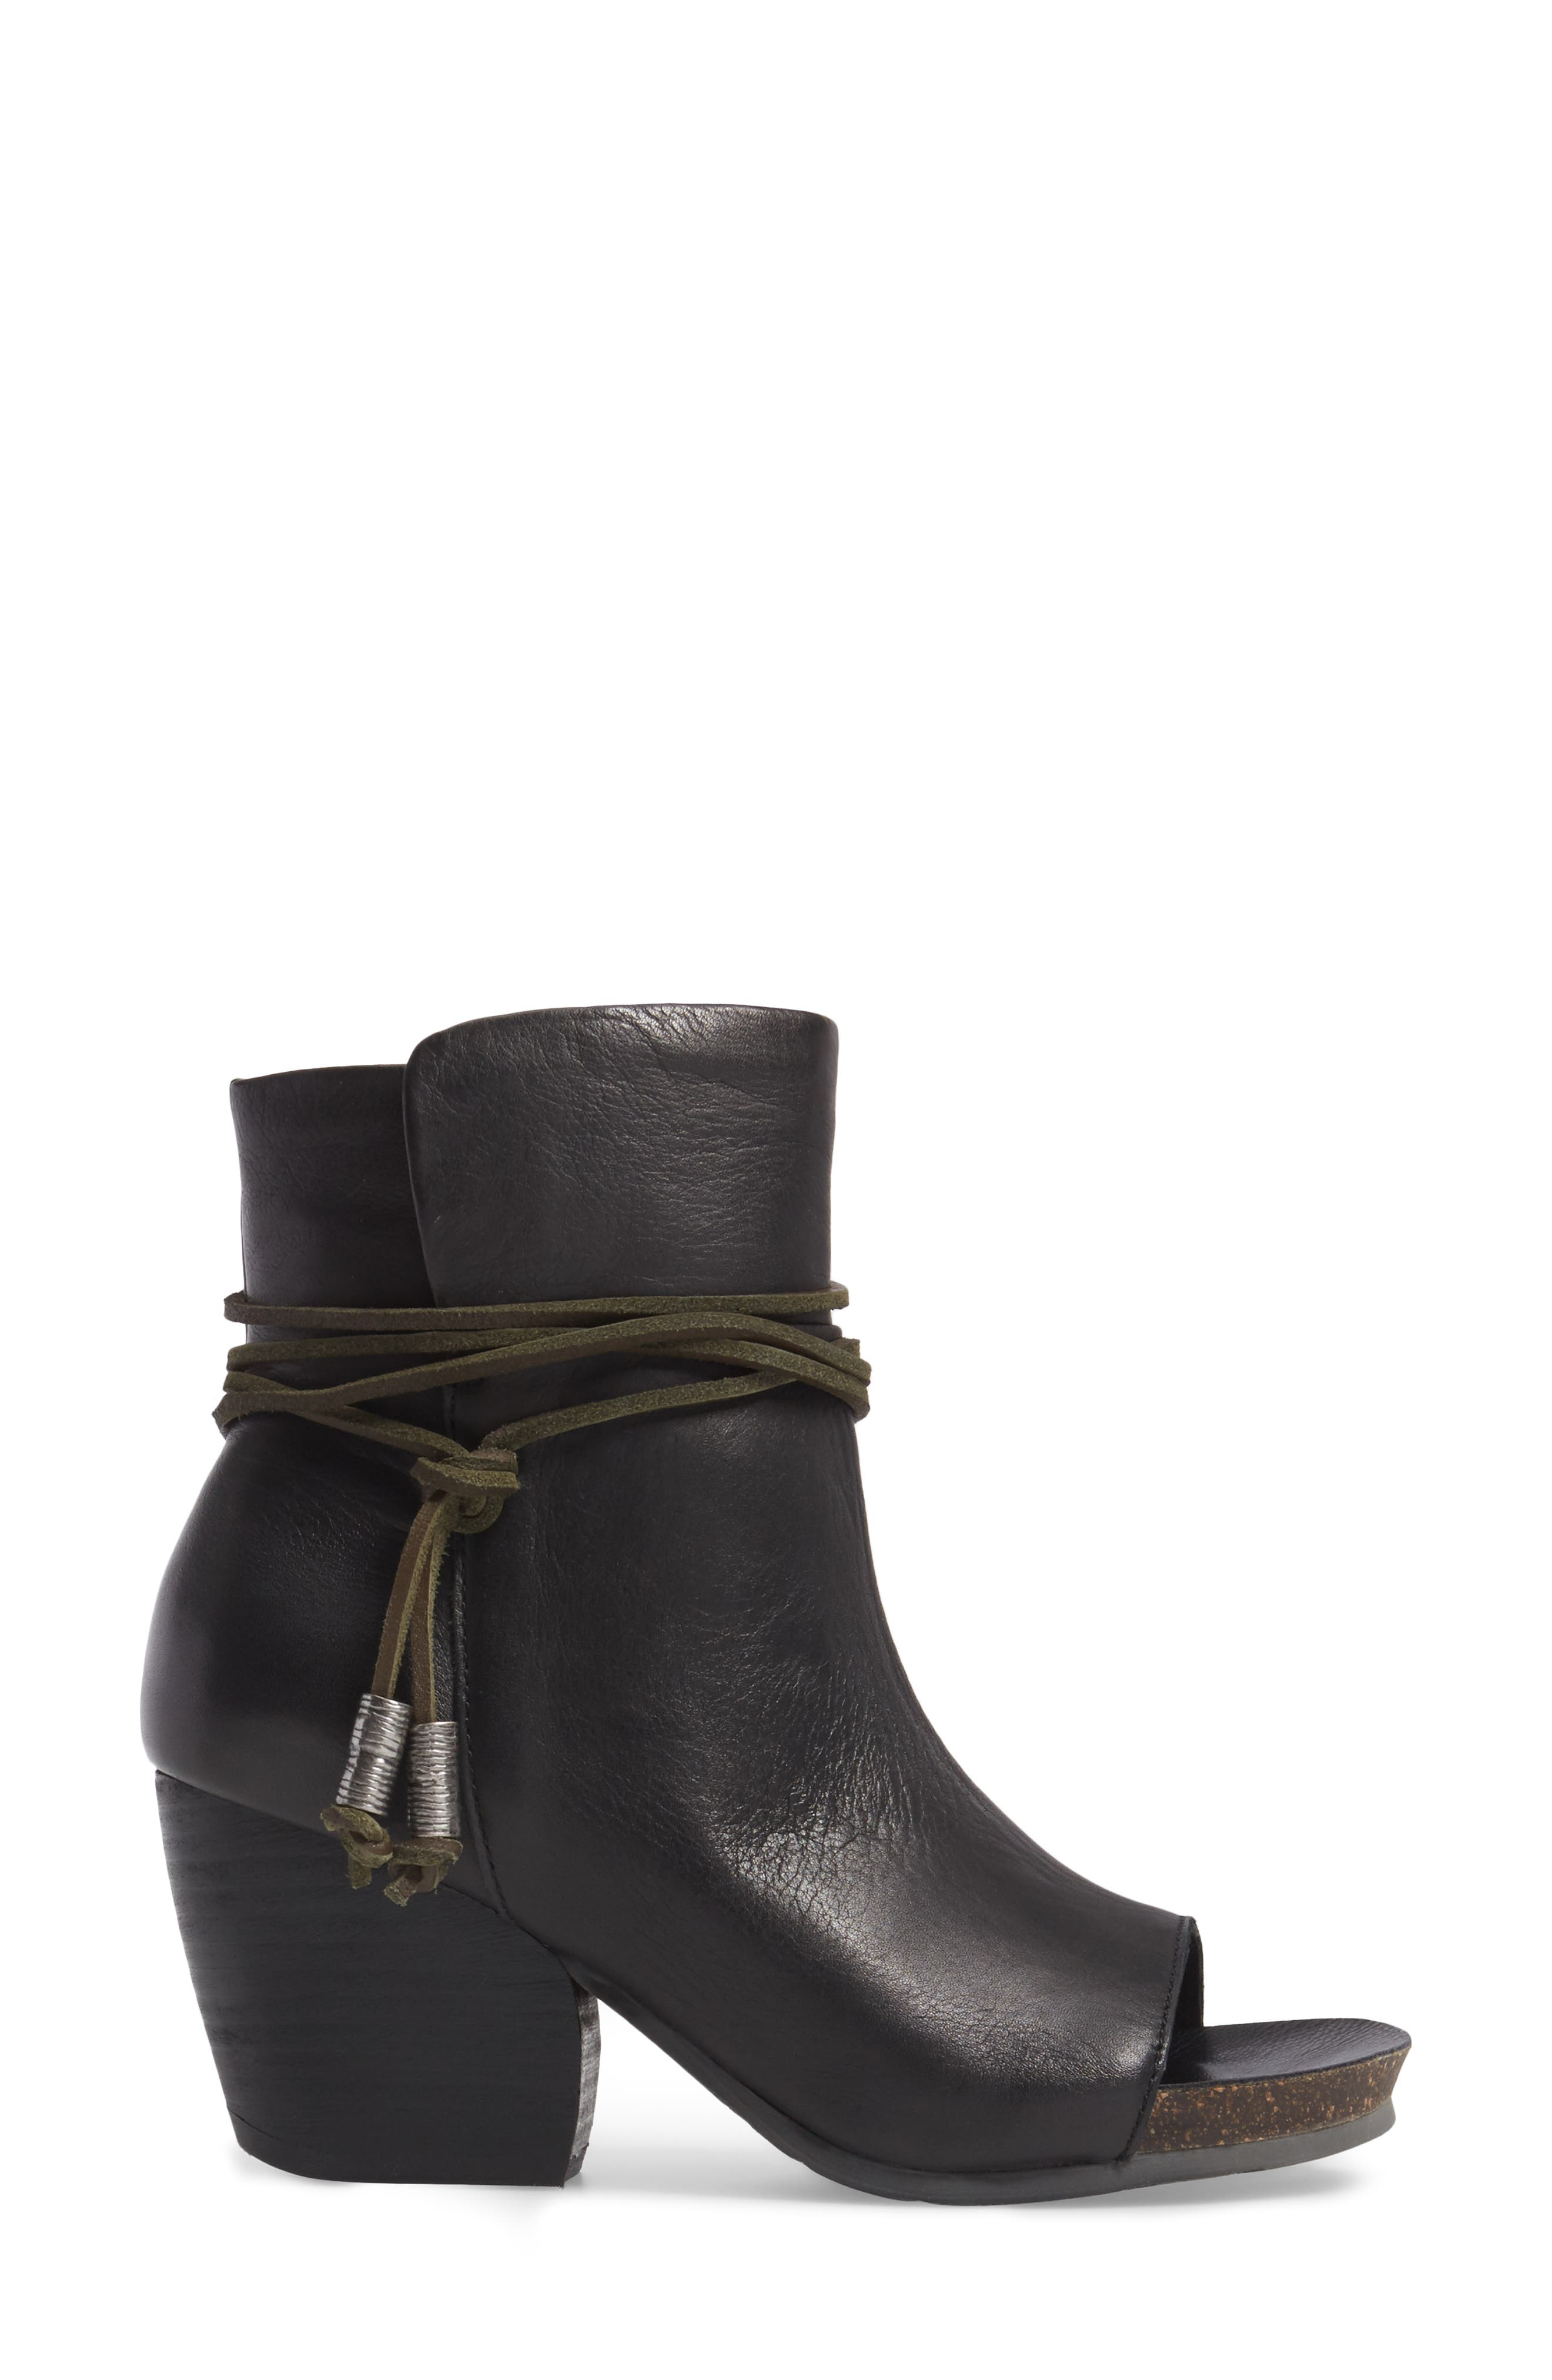 Open Toe Bootie,                             Alternate thumbnail 3, color,                             Black Leather